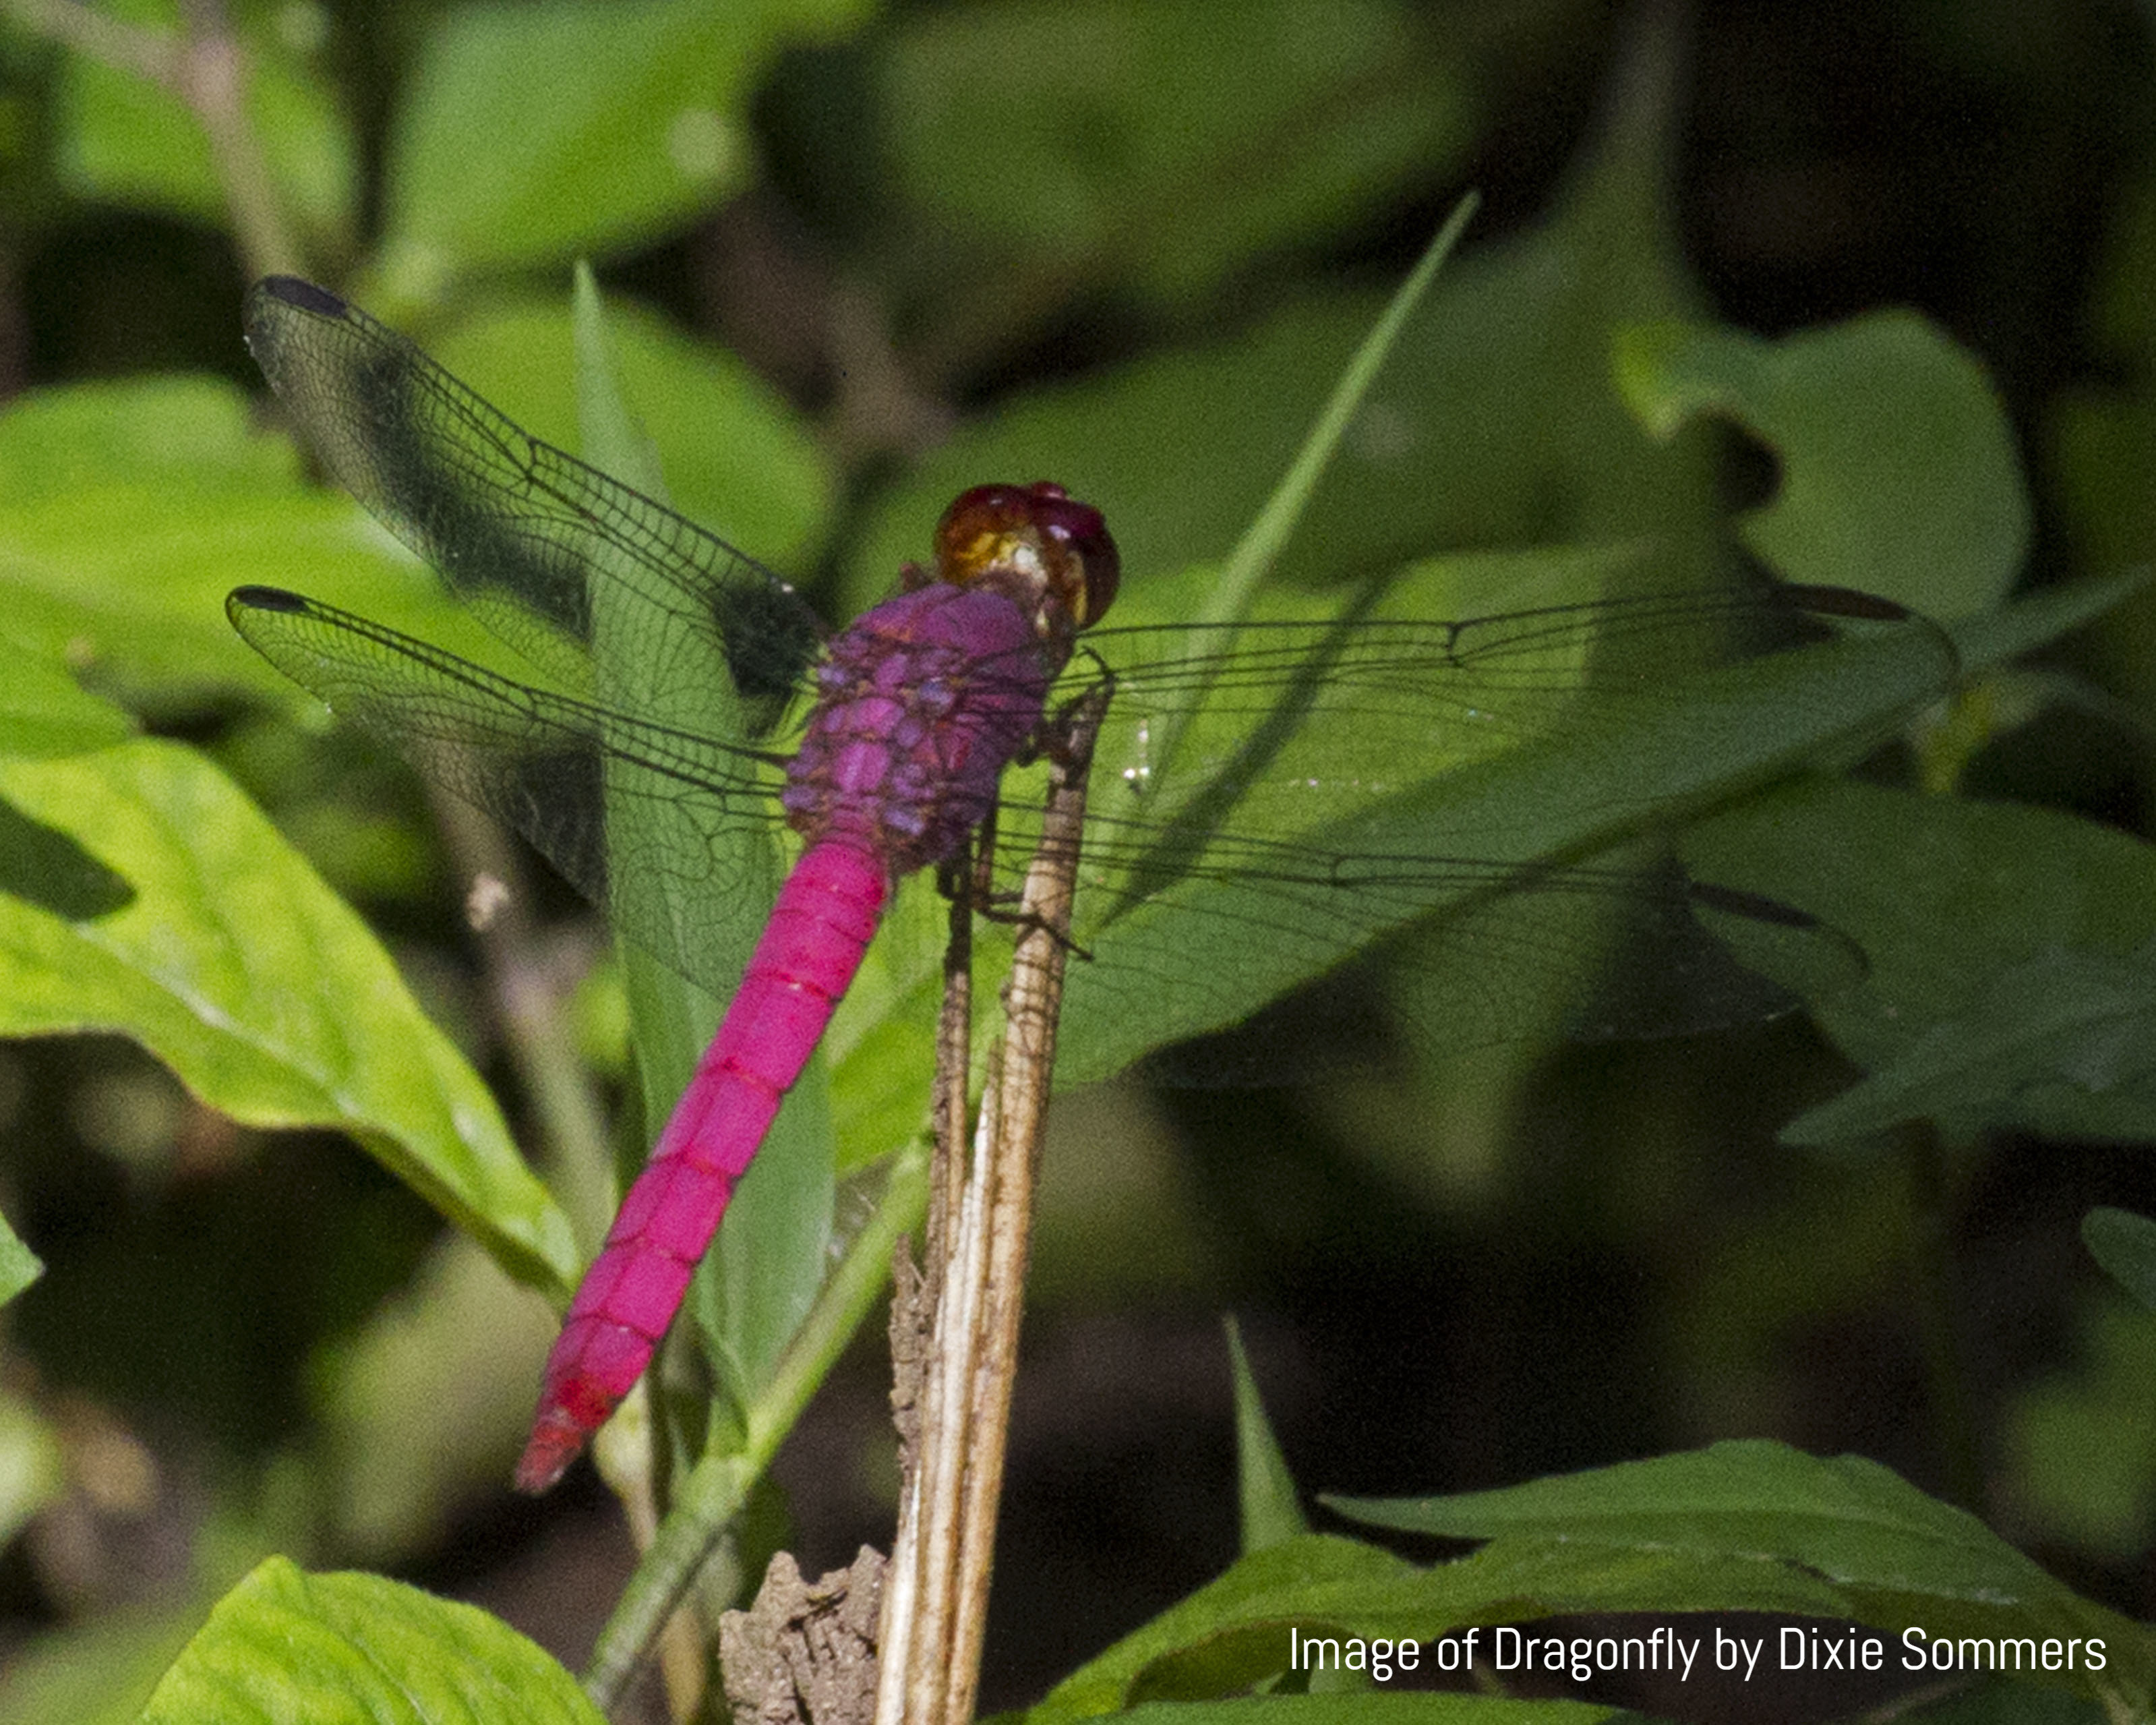 Image of Dragonfly by Dixie Sommers